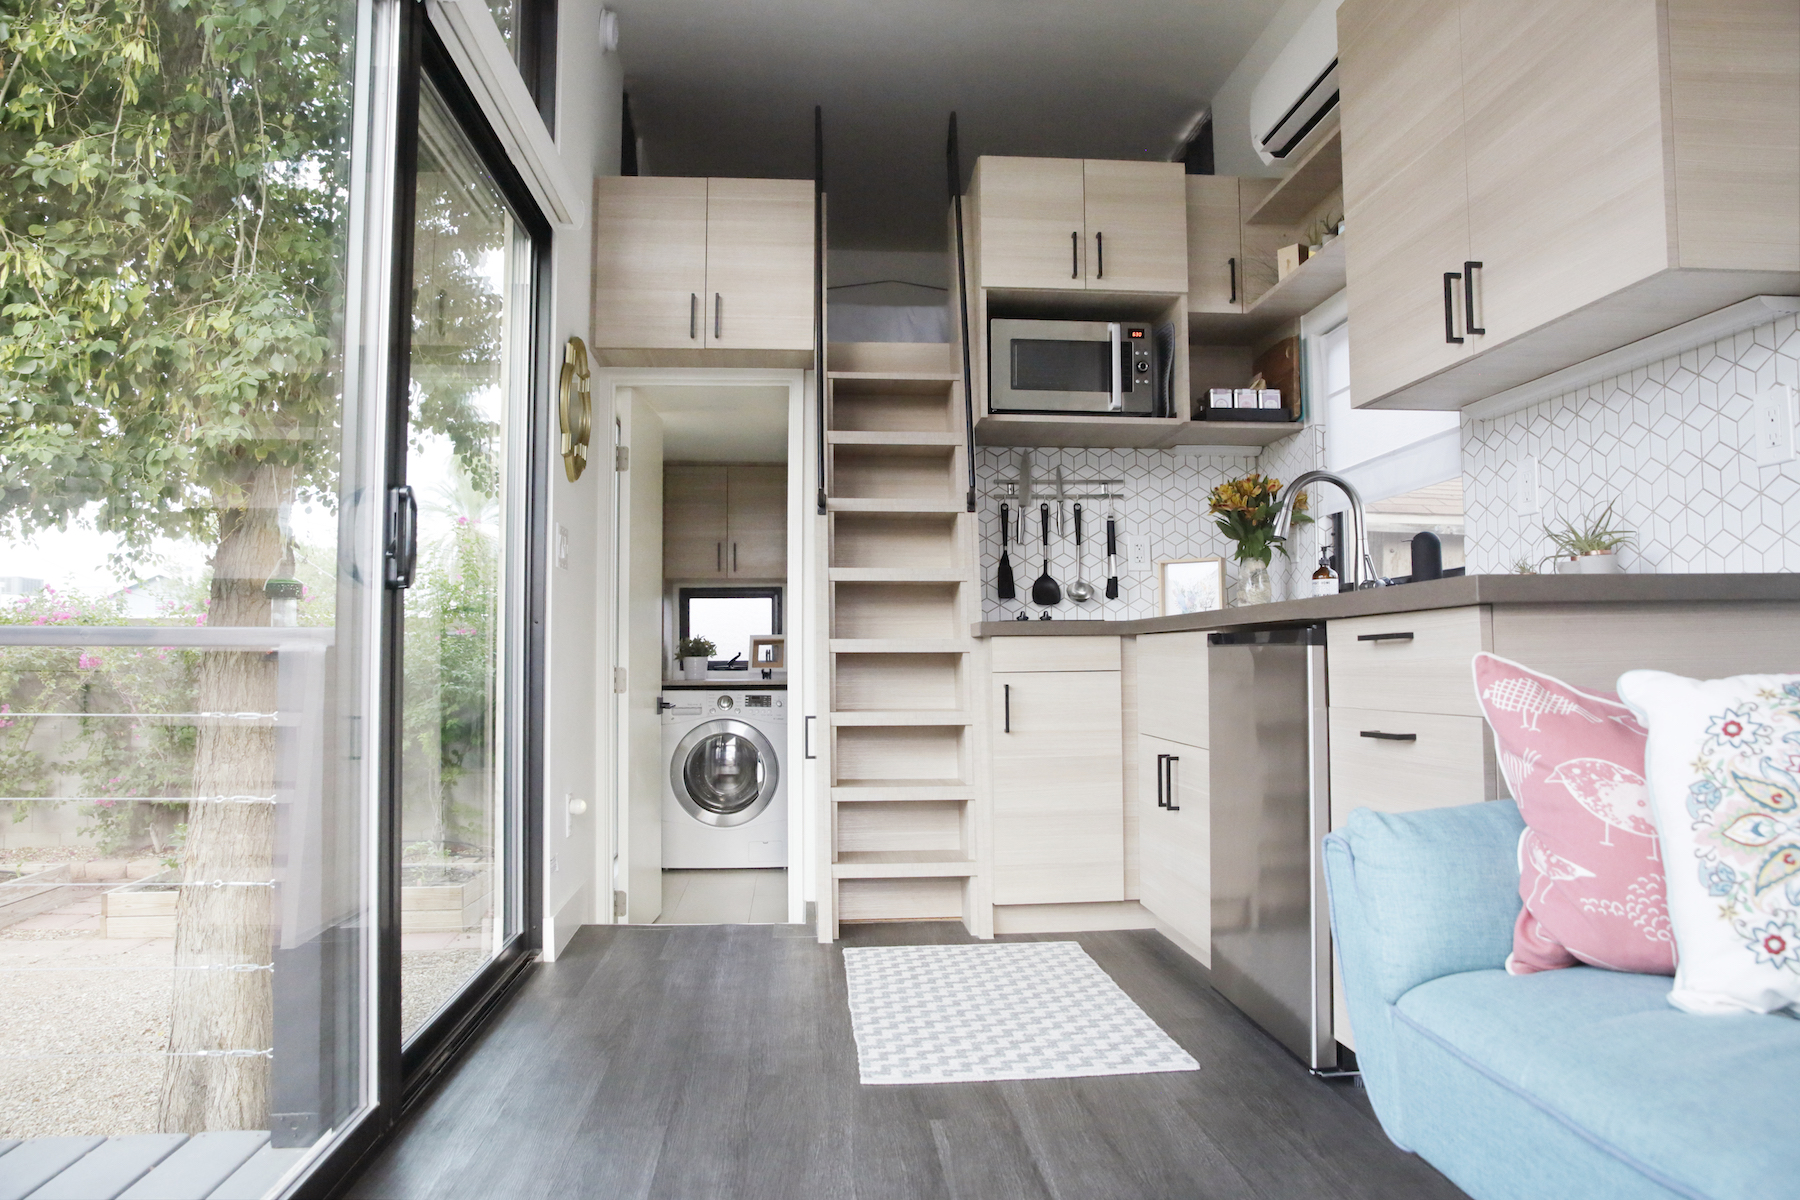 & Space-Saving Decor Ideas from Inspiring Tiny Homes | Real Simple